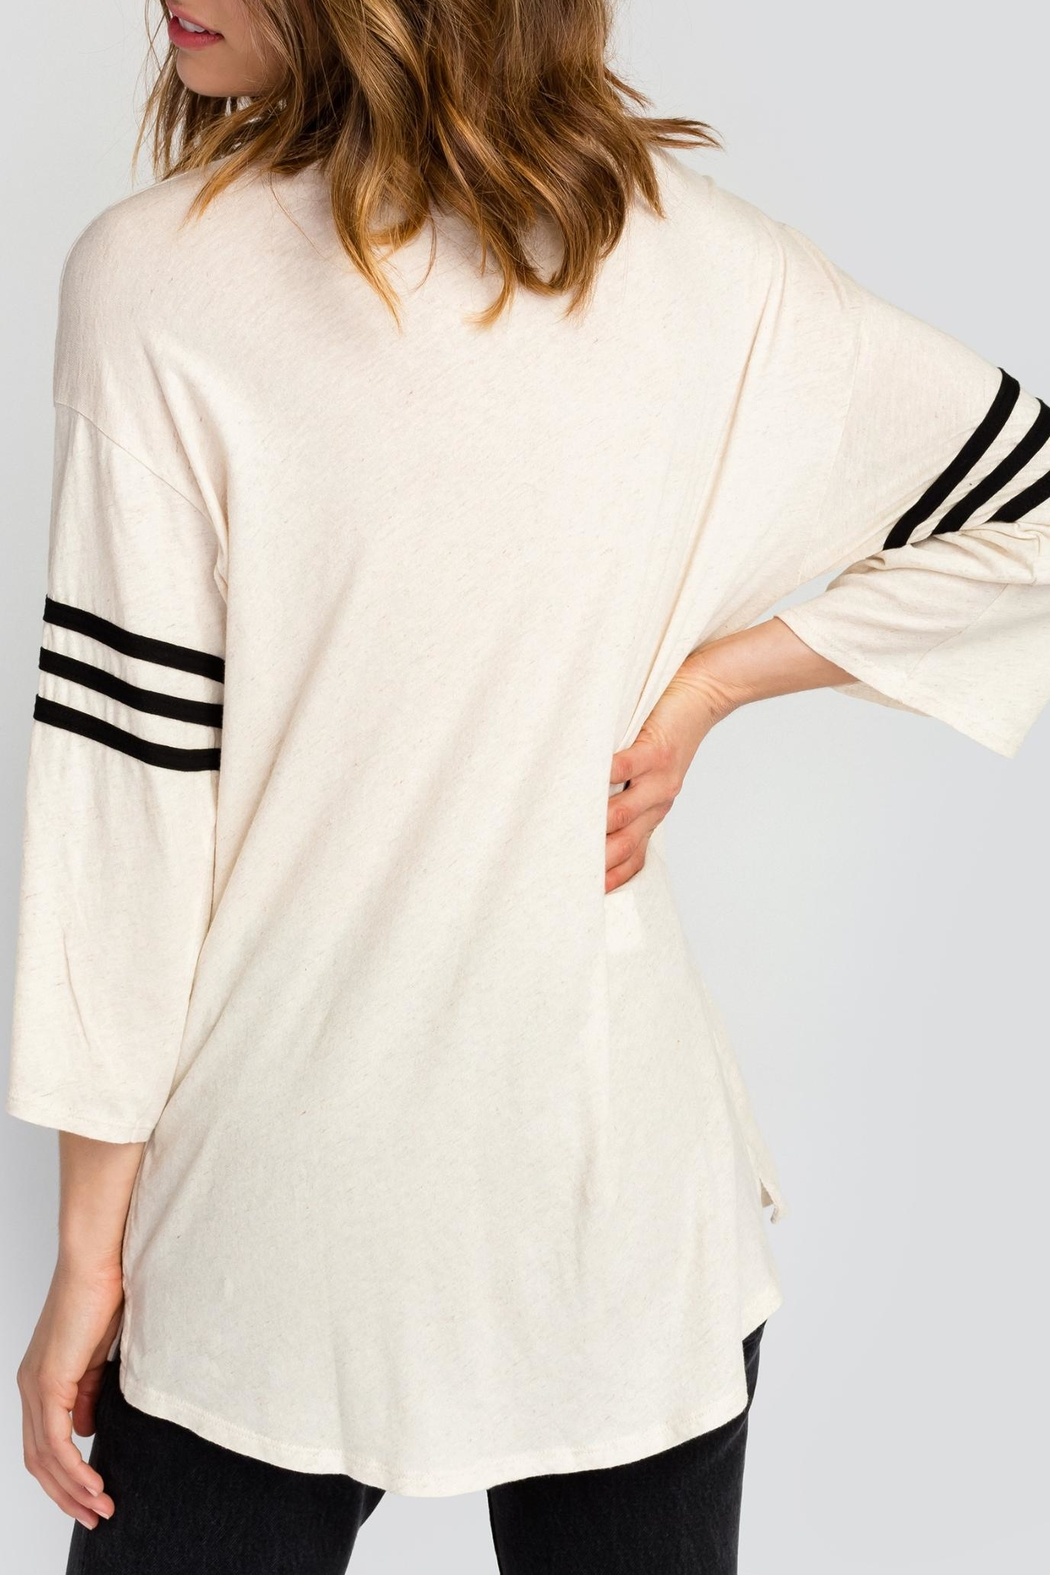 Wildfox Working Out Tunic Top - Back Cropped Image